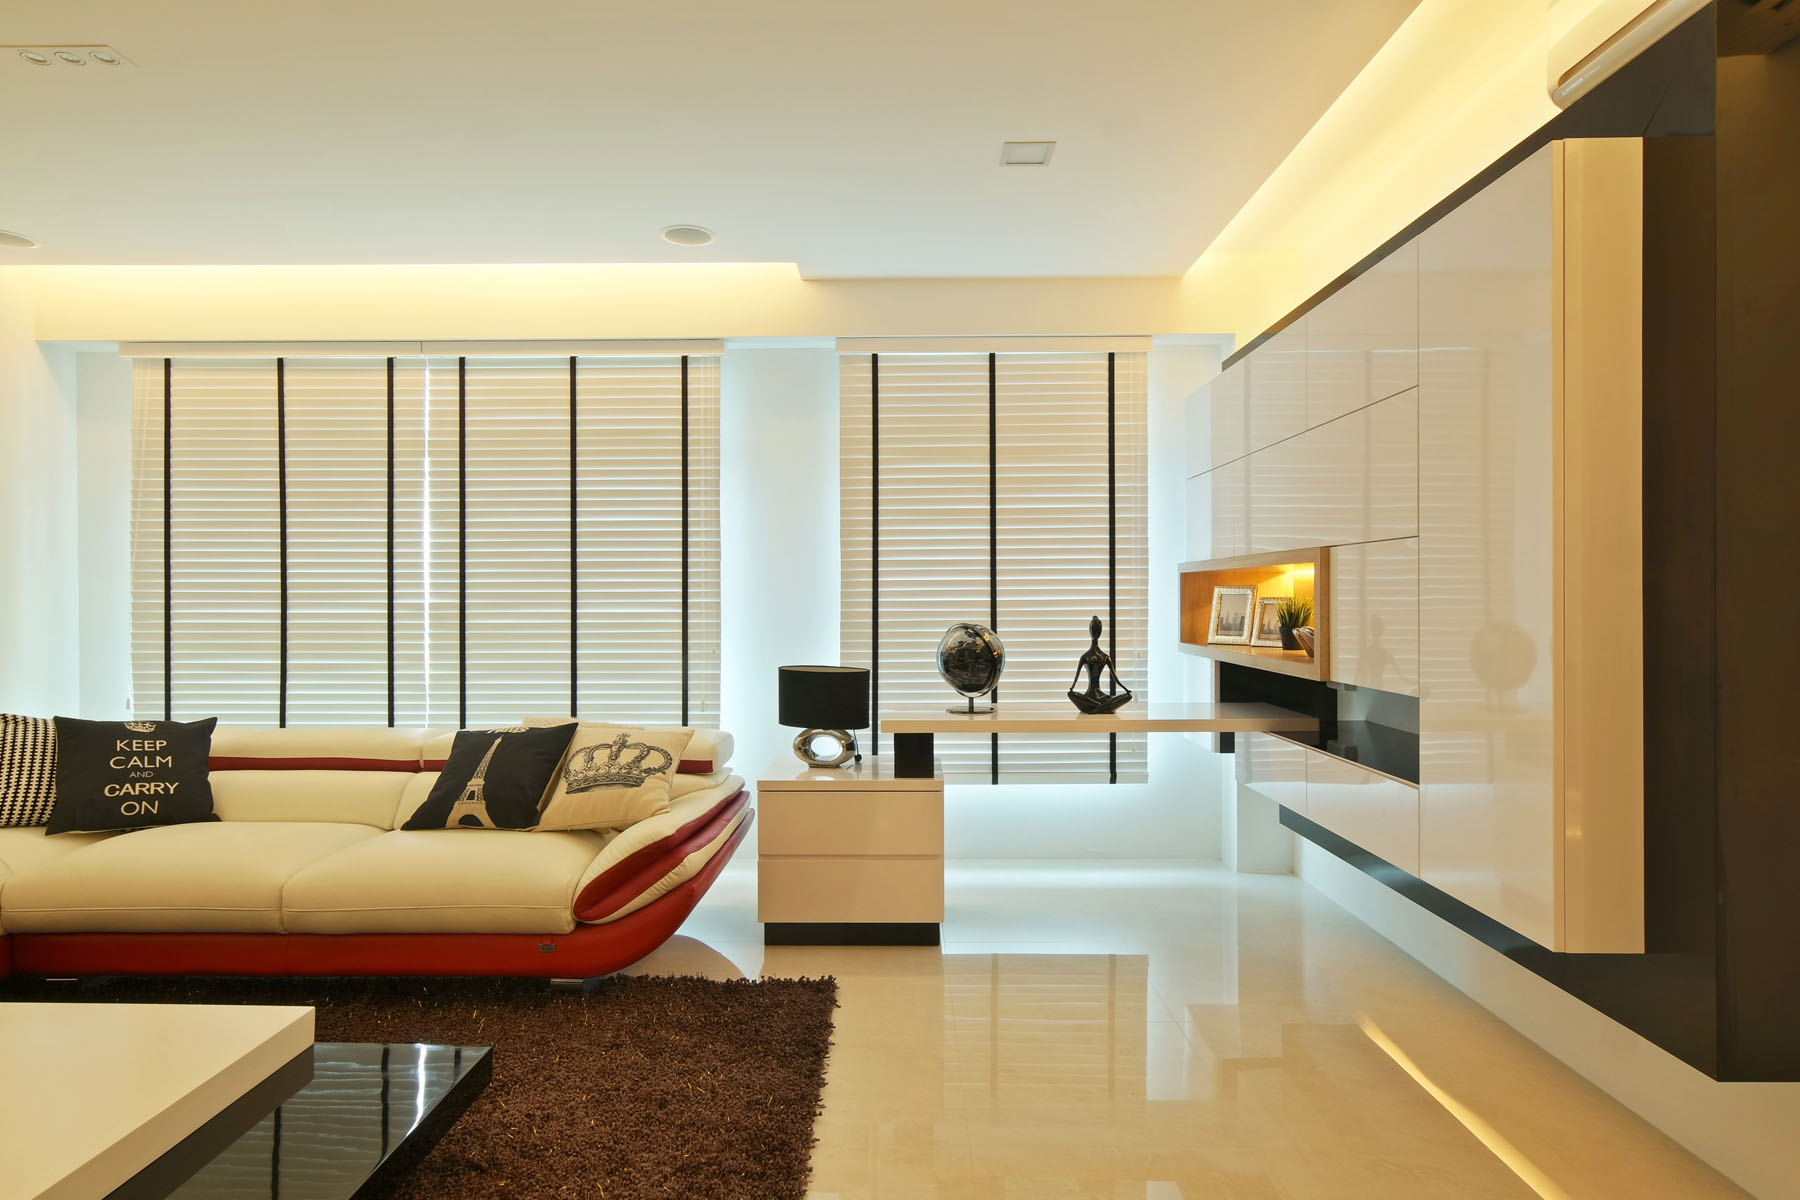 Renovation contractors in Singapore